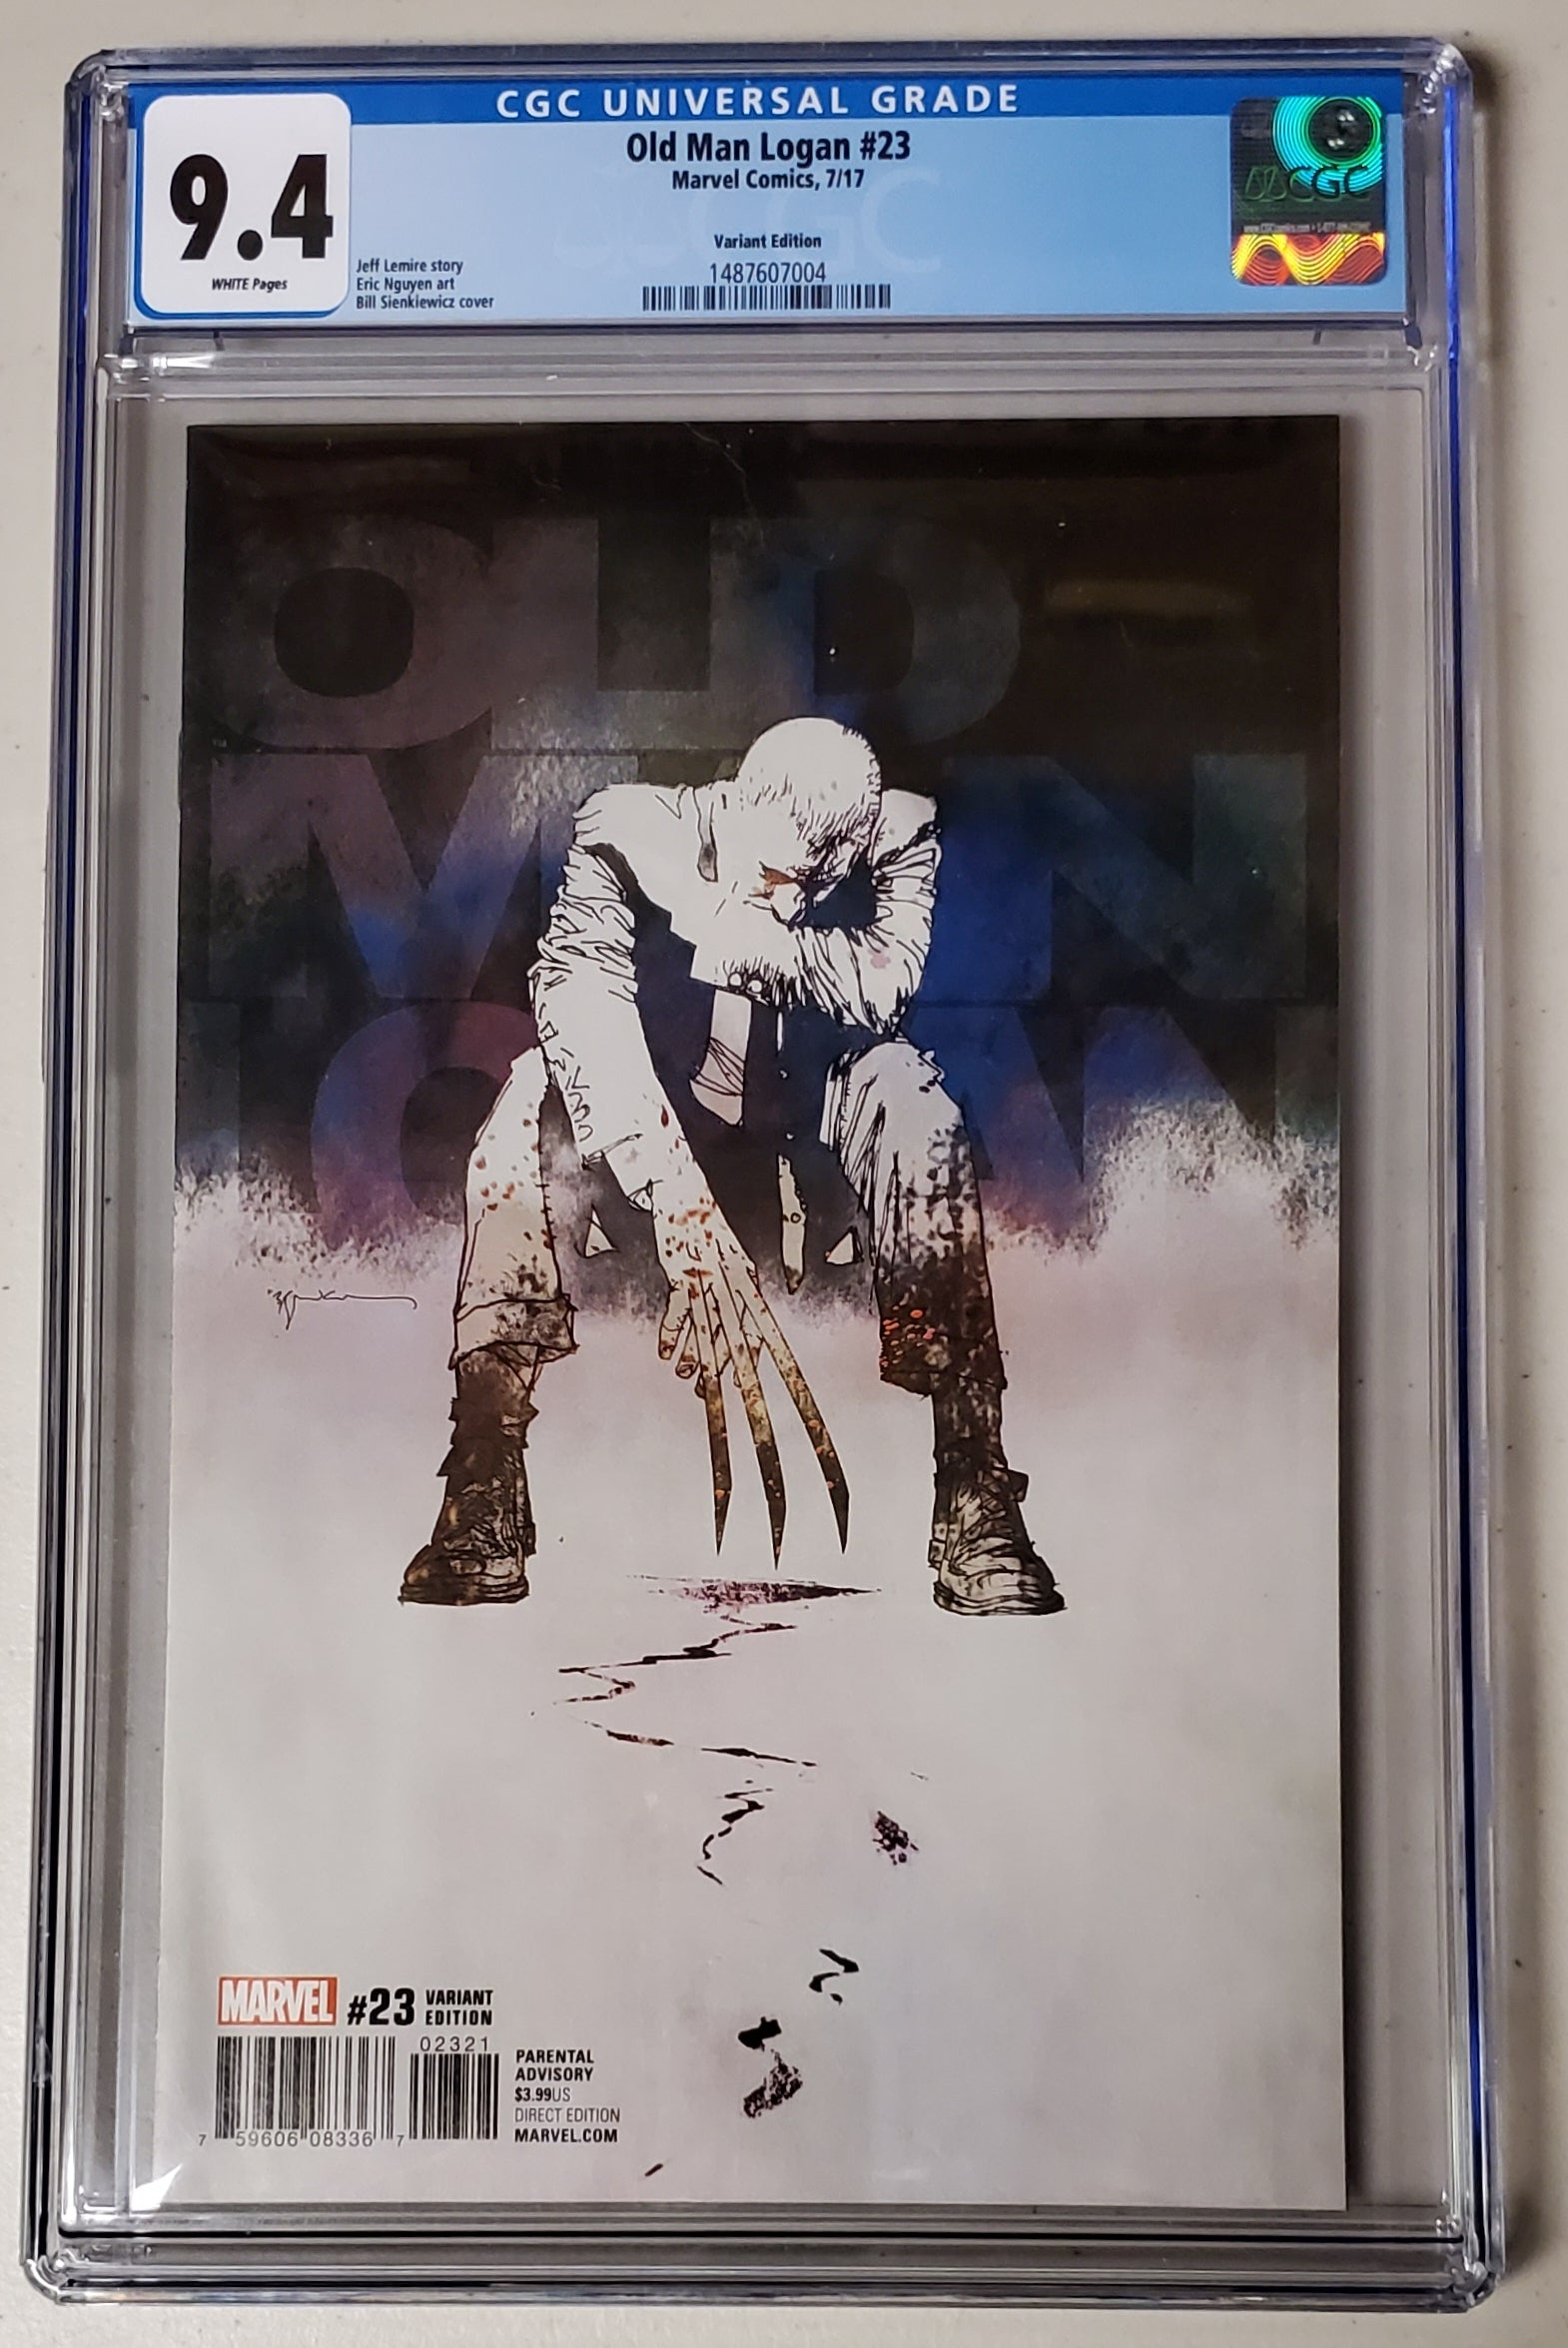 9.4 CGC Old Man Logan #23 Bill Sienkiewicz 1:25 Variant 2017